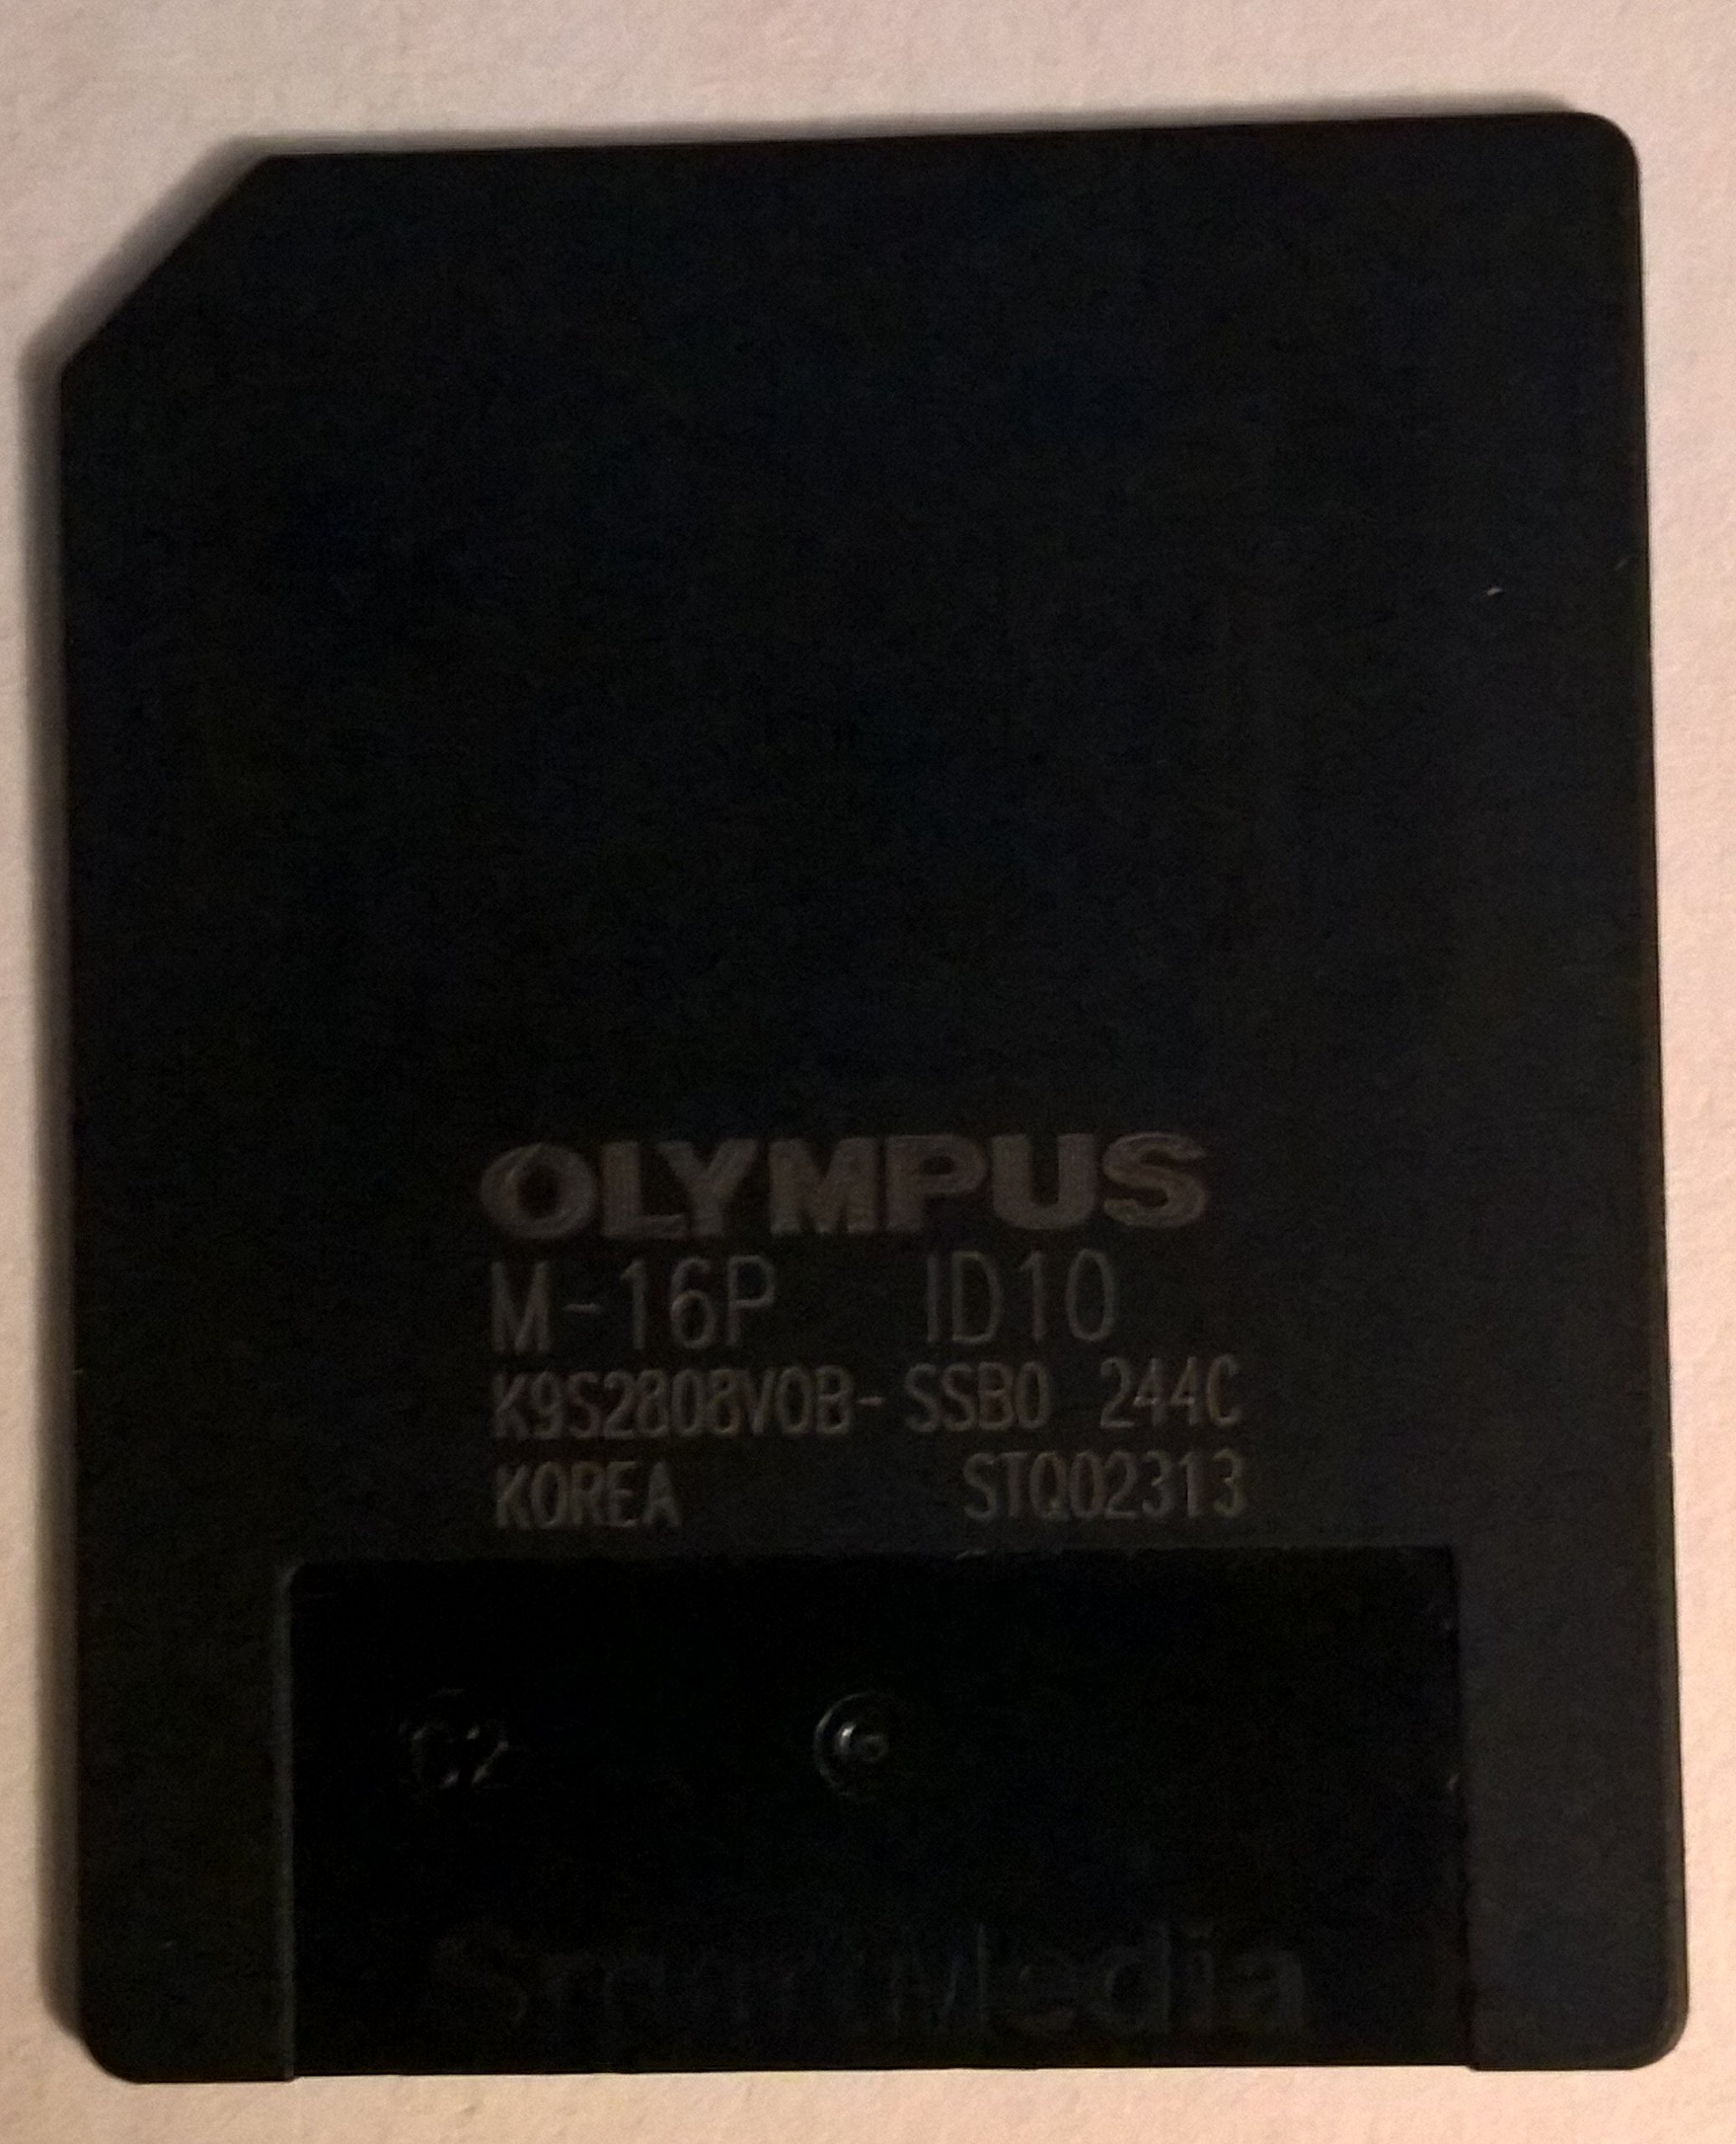 SmartMedia 16MB Digital Flash Memory Card by Olympus